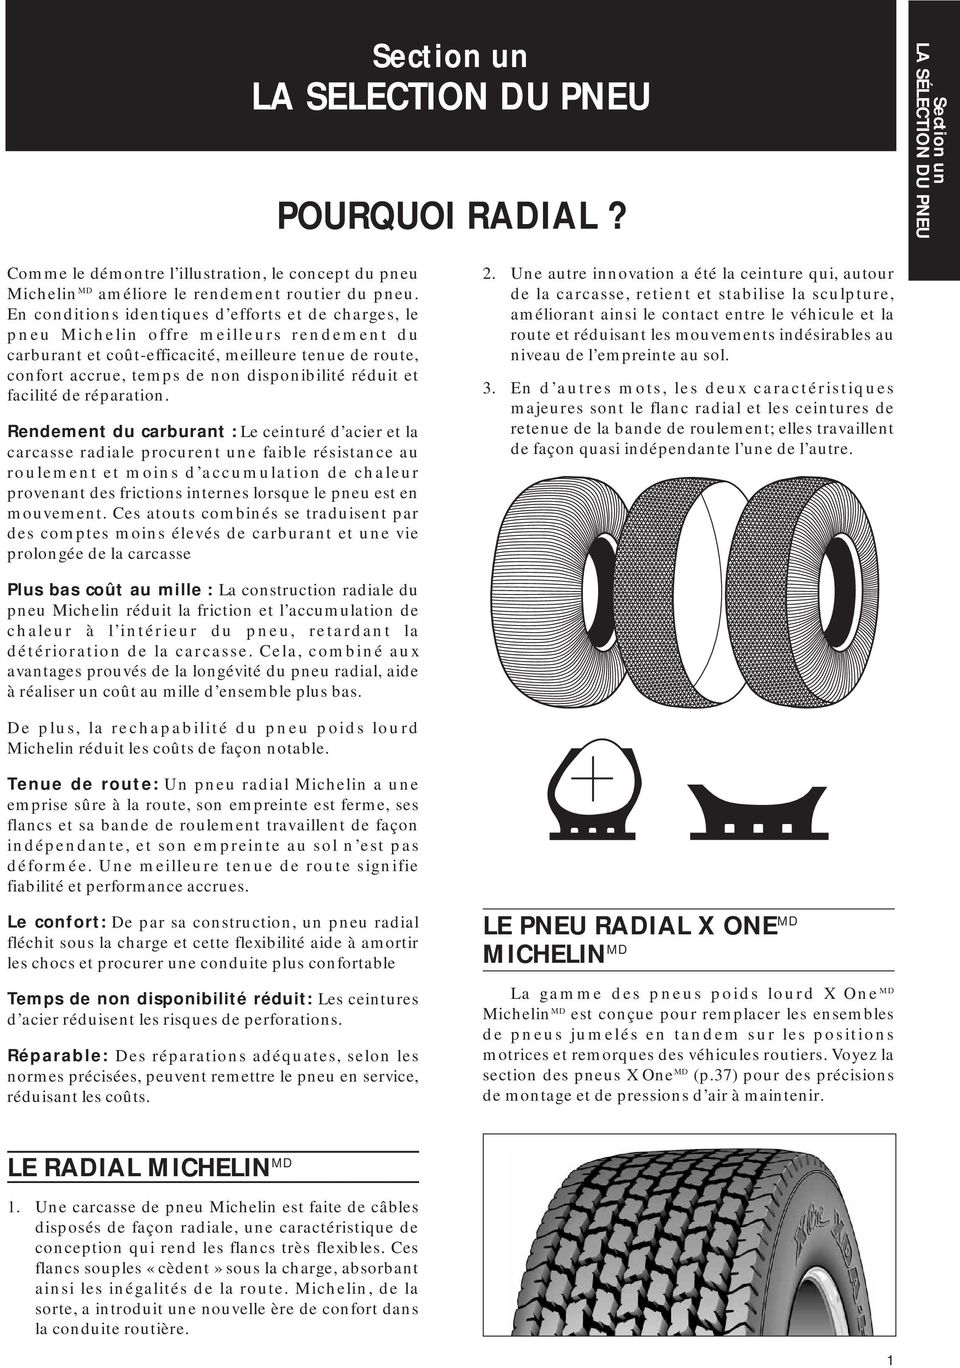 pneu poids lourd michelin md manuel d entretien pdf. Black Bedroom Furniture Sets. Home Design Ideas